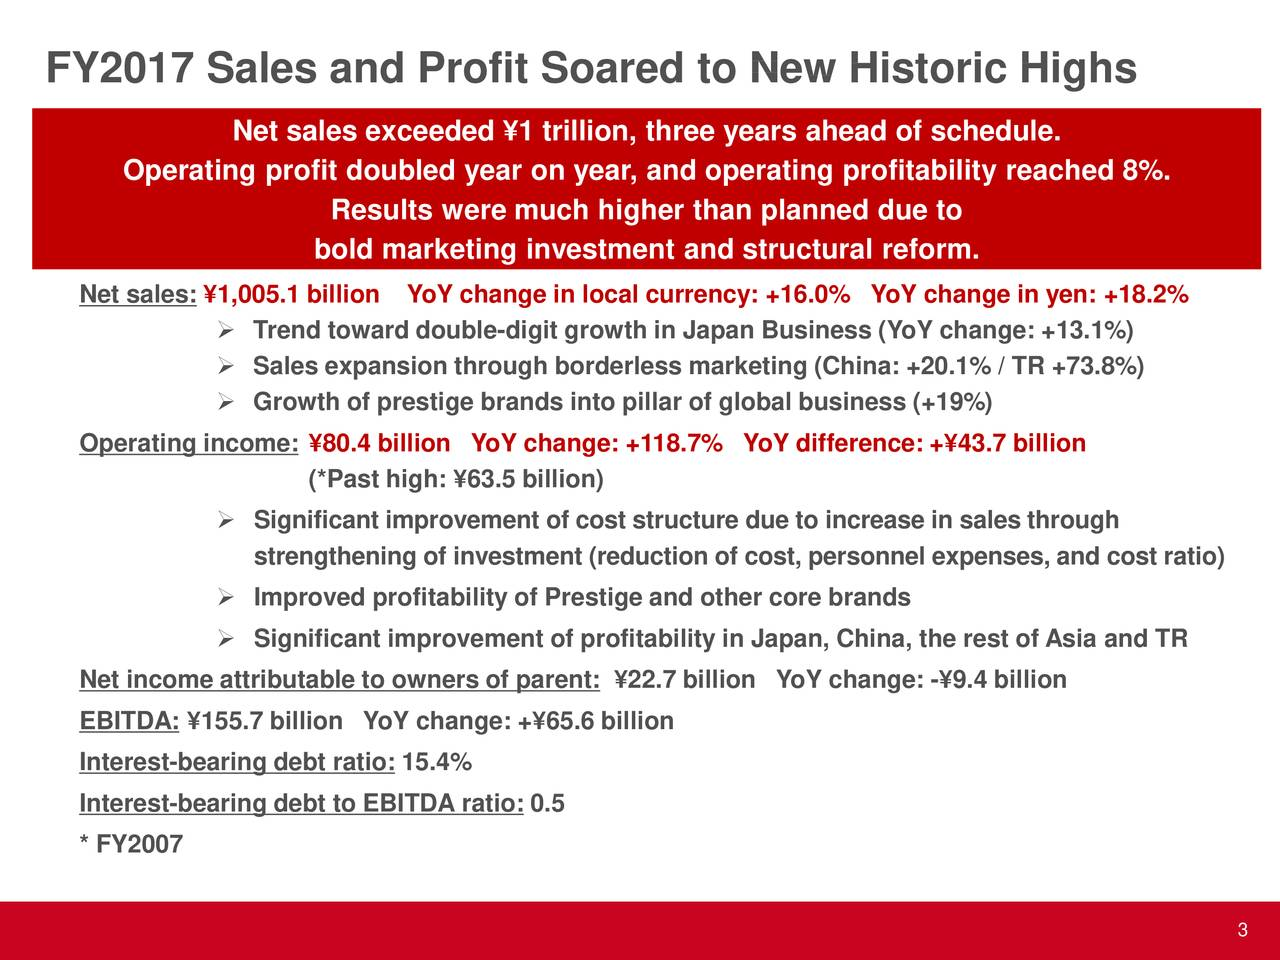 Net sales exceeded ¥1 trillion, three years ahead of schedule. Operating profit doubled year on year, and operating profitability reached 8%. Results were much higher than planned due to bold marketing investment and structural reform. Net sales: ¥1,005.1 billionYoY change in local currency: +16.0% YoY change in yen: +18.2%  Trend toward double-digit growth in Japan Business (YoY change: +13.1%)  Sales expansion through borderless marketing (China: +20.1% / TR +73.8%)  Growth of prestige brands into pillar of global business (+19%) Operating income: ¥80.4 billion YoY change: +118.7% YoY difference: +¥43.7 billion (*Past high: ¥63.5 billion)  Significant improvement of cost structure due to increase in sales through strengthening of investment (reduction of cost, personnel expenses, and cost ratio)  Improved profitability of Prestige and other core brands  Significant improvement of profitability in Japan, China, the rest of Asia and TR Net income attributable to owners of parent: ¥22.7 billion YoY change: -¥9.4 billion EBITDA: ¥155.7 billion YoY change: +¥65.6 billion Interest-bearing debt ratio: 15.4% Interest-bearing debt to EBITDA ratio: 0.5 * FY2007 3